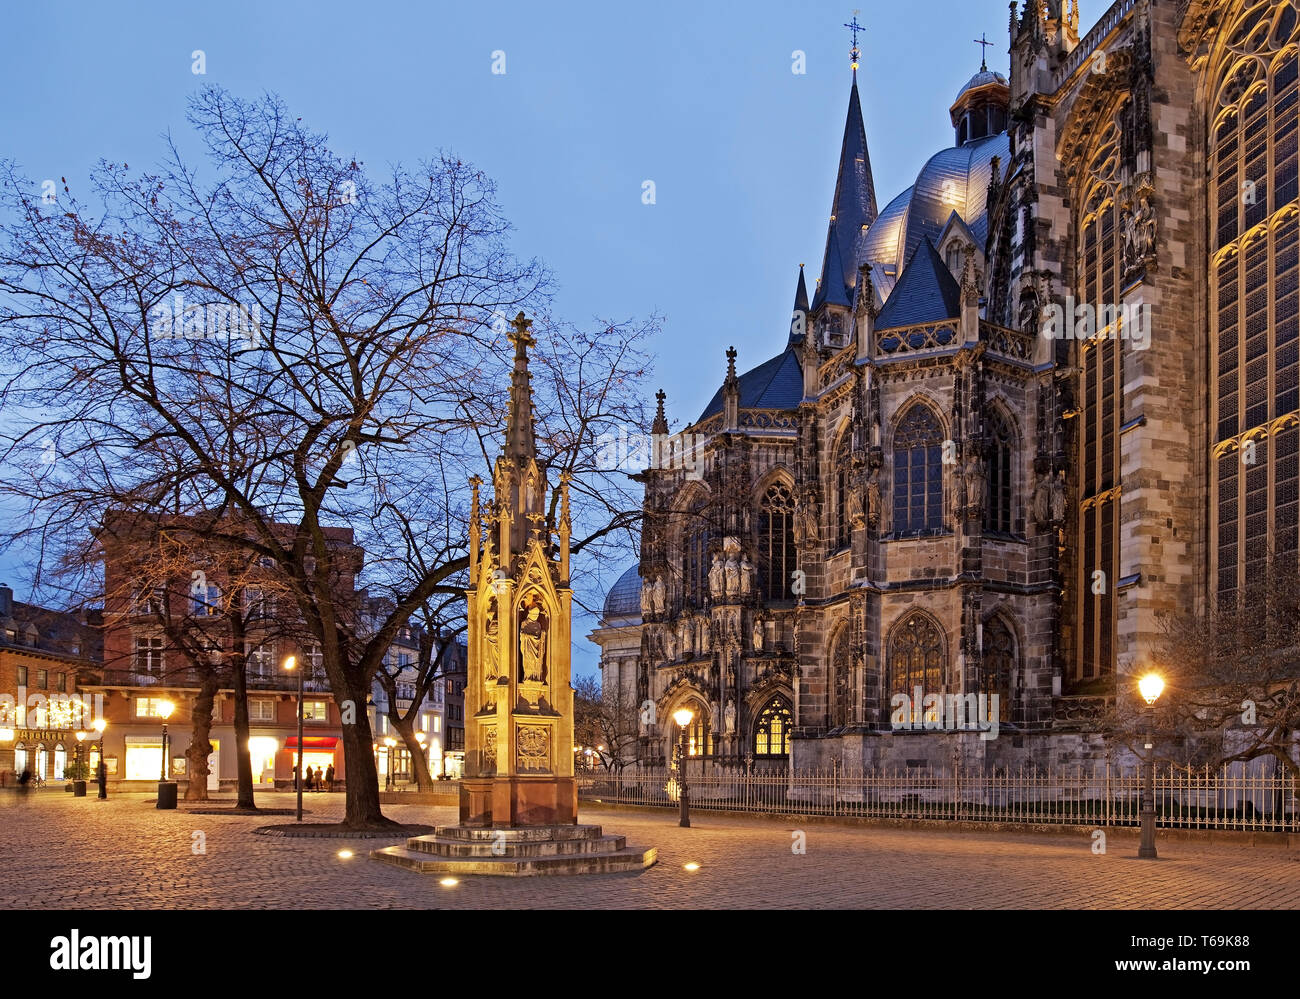 Vincent fountain, Muensterplatz in front of the cathedral, Aachen, North Rhine-Westphalia, Germany - Stock Image